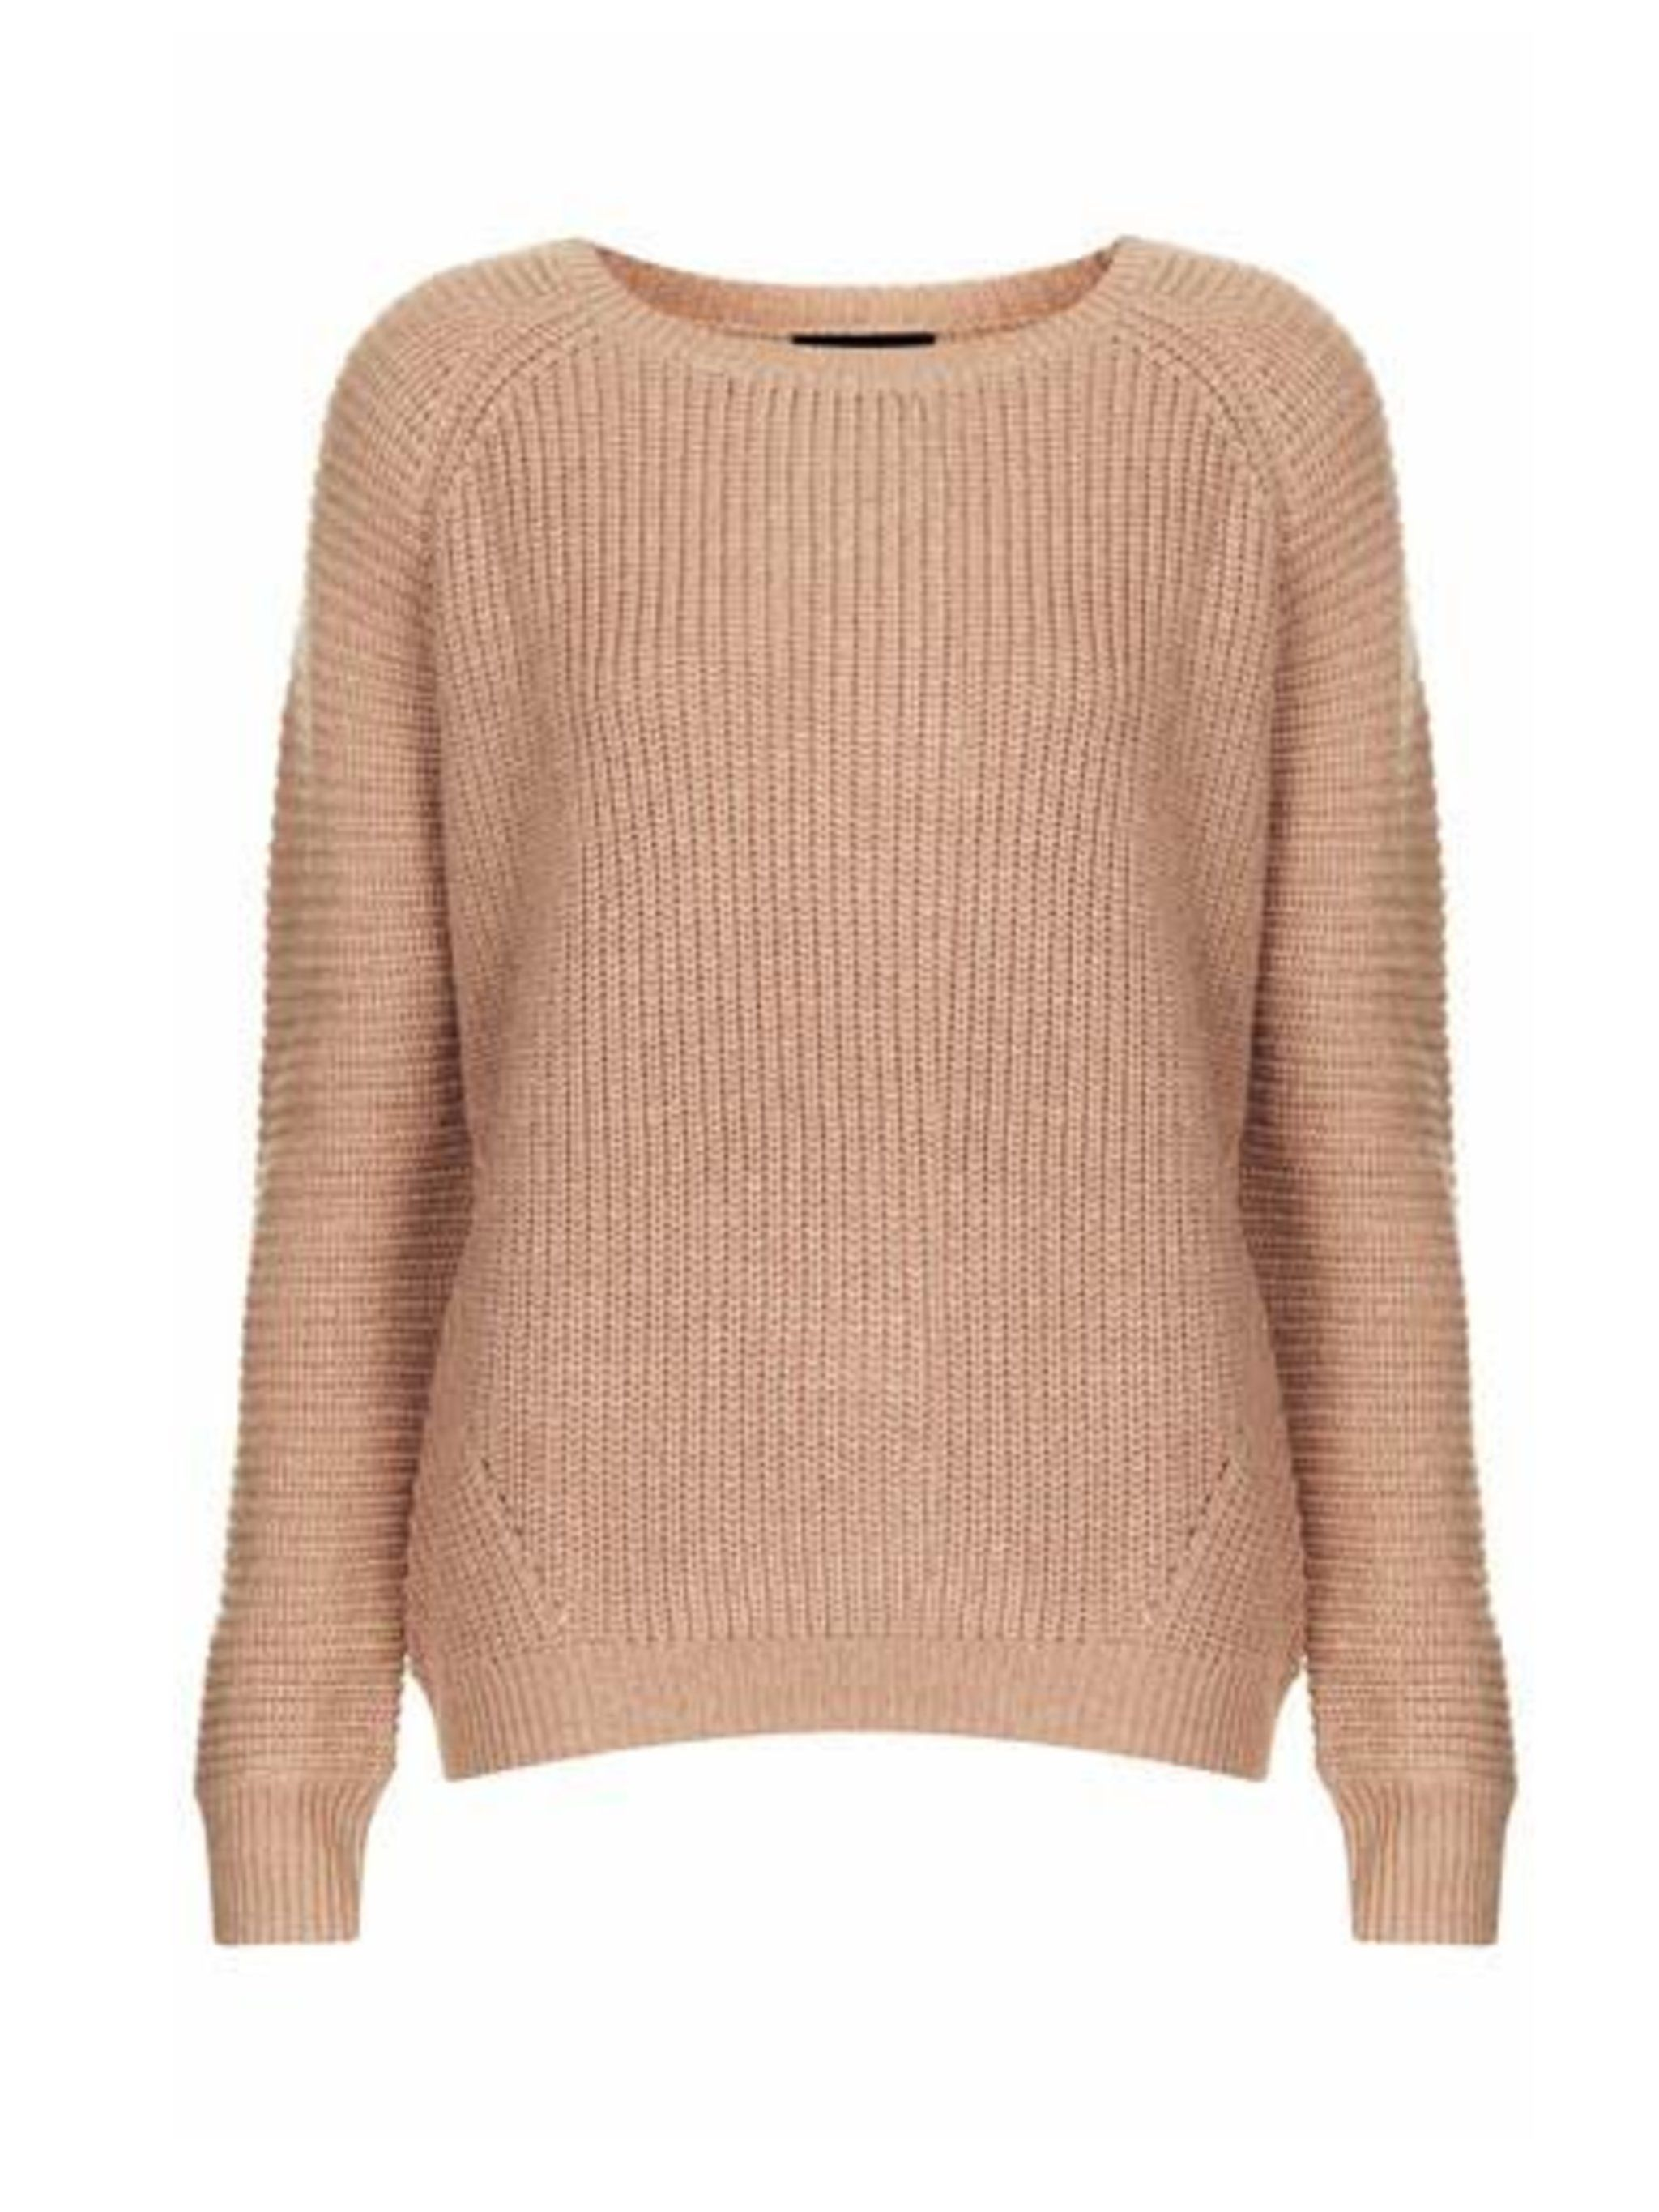 "<p>Rib knitted jumper, £38 from <a href=""http://www.topshop.com/webapp/wcs/stores/servlet/ProductDisplay?searchTerm=jumper&storeId=12556&productId=14105993&urlRequestType=Base&categoryId=&langId=-1&productIdentifier=product&cat"